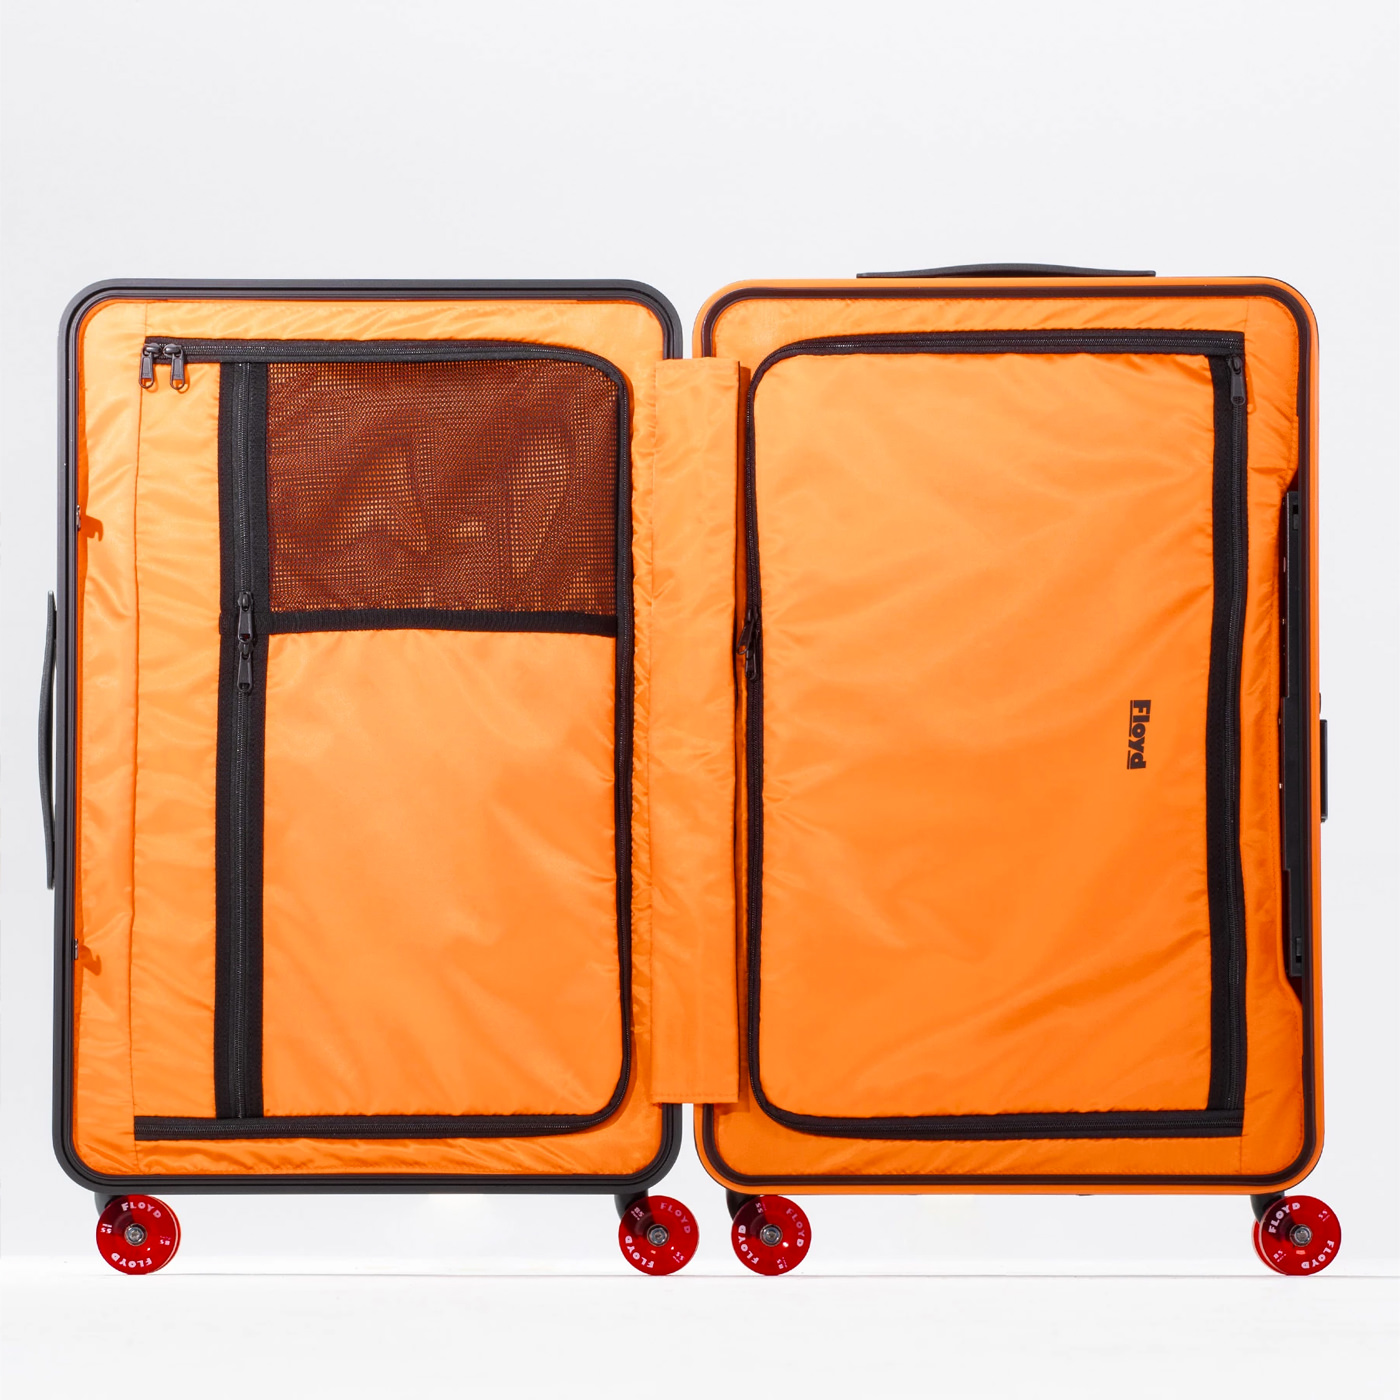 Floyd Valise Travel Case-Cabin Check-In Inspiration Californie Venice Beach Skate Culture